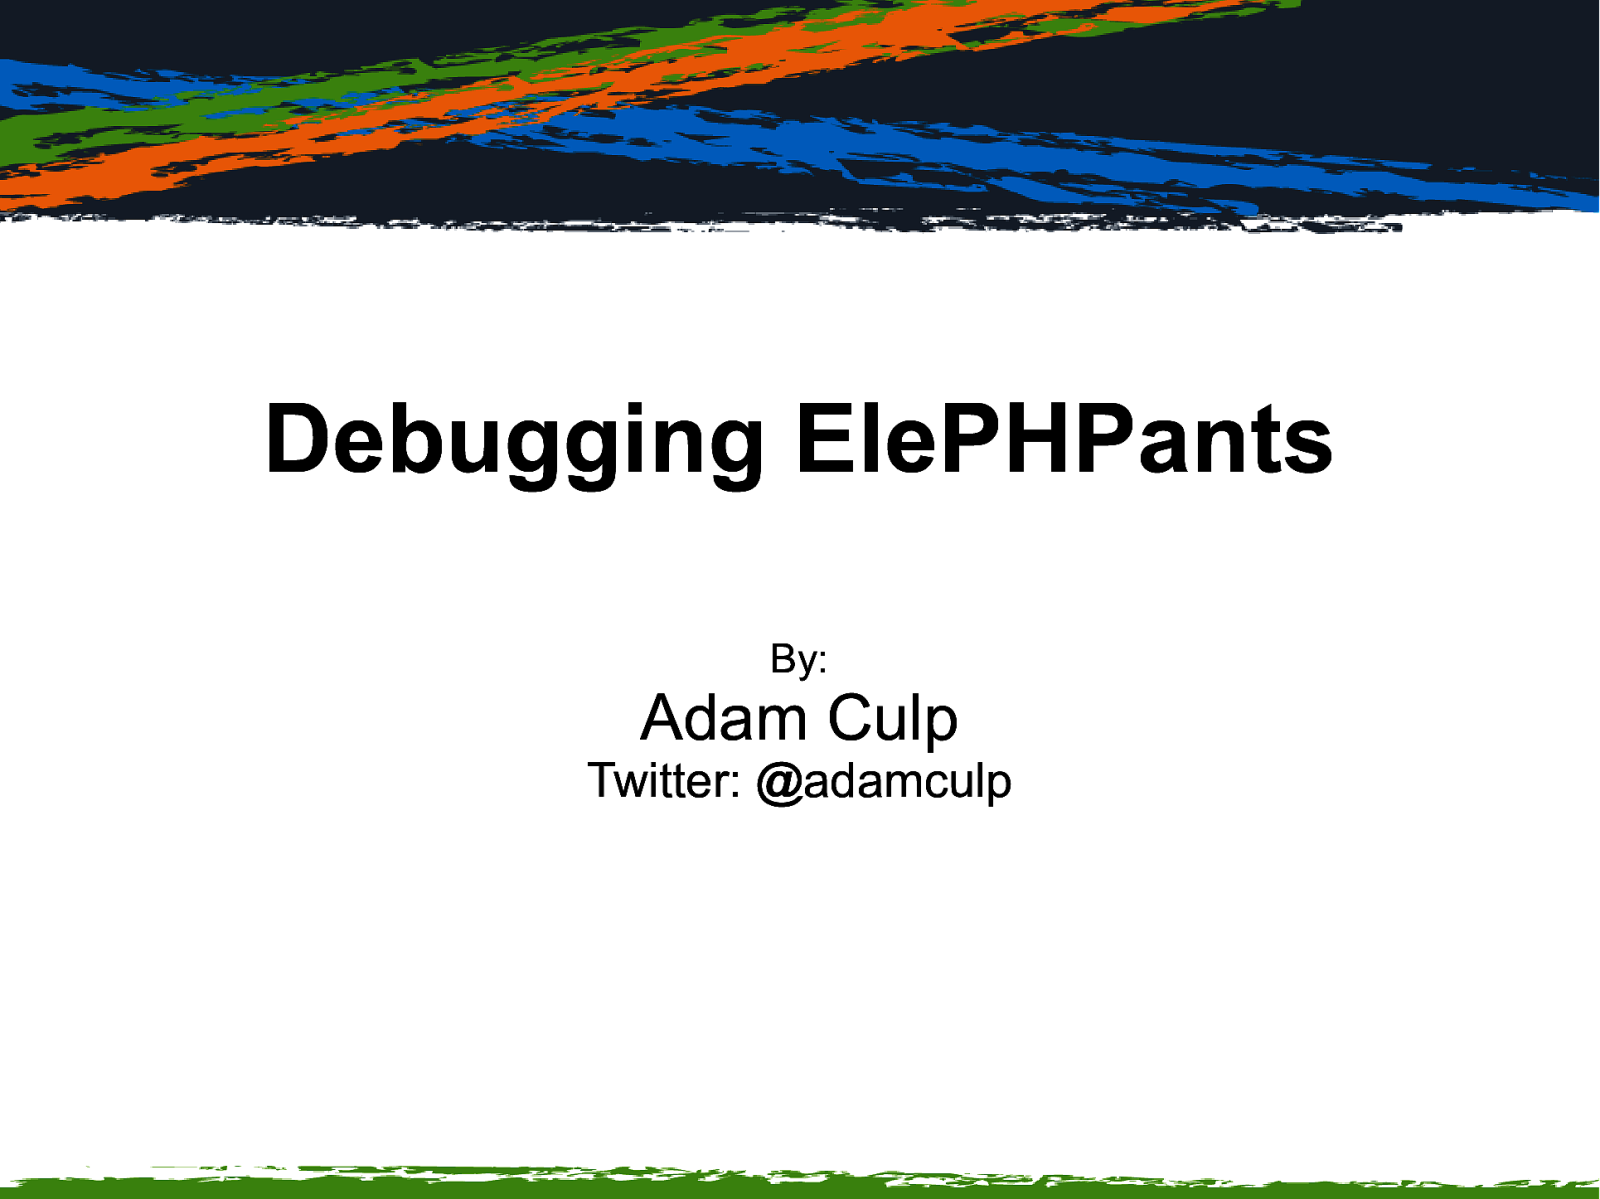 Debugging ElePHPants